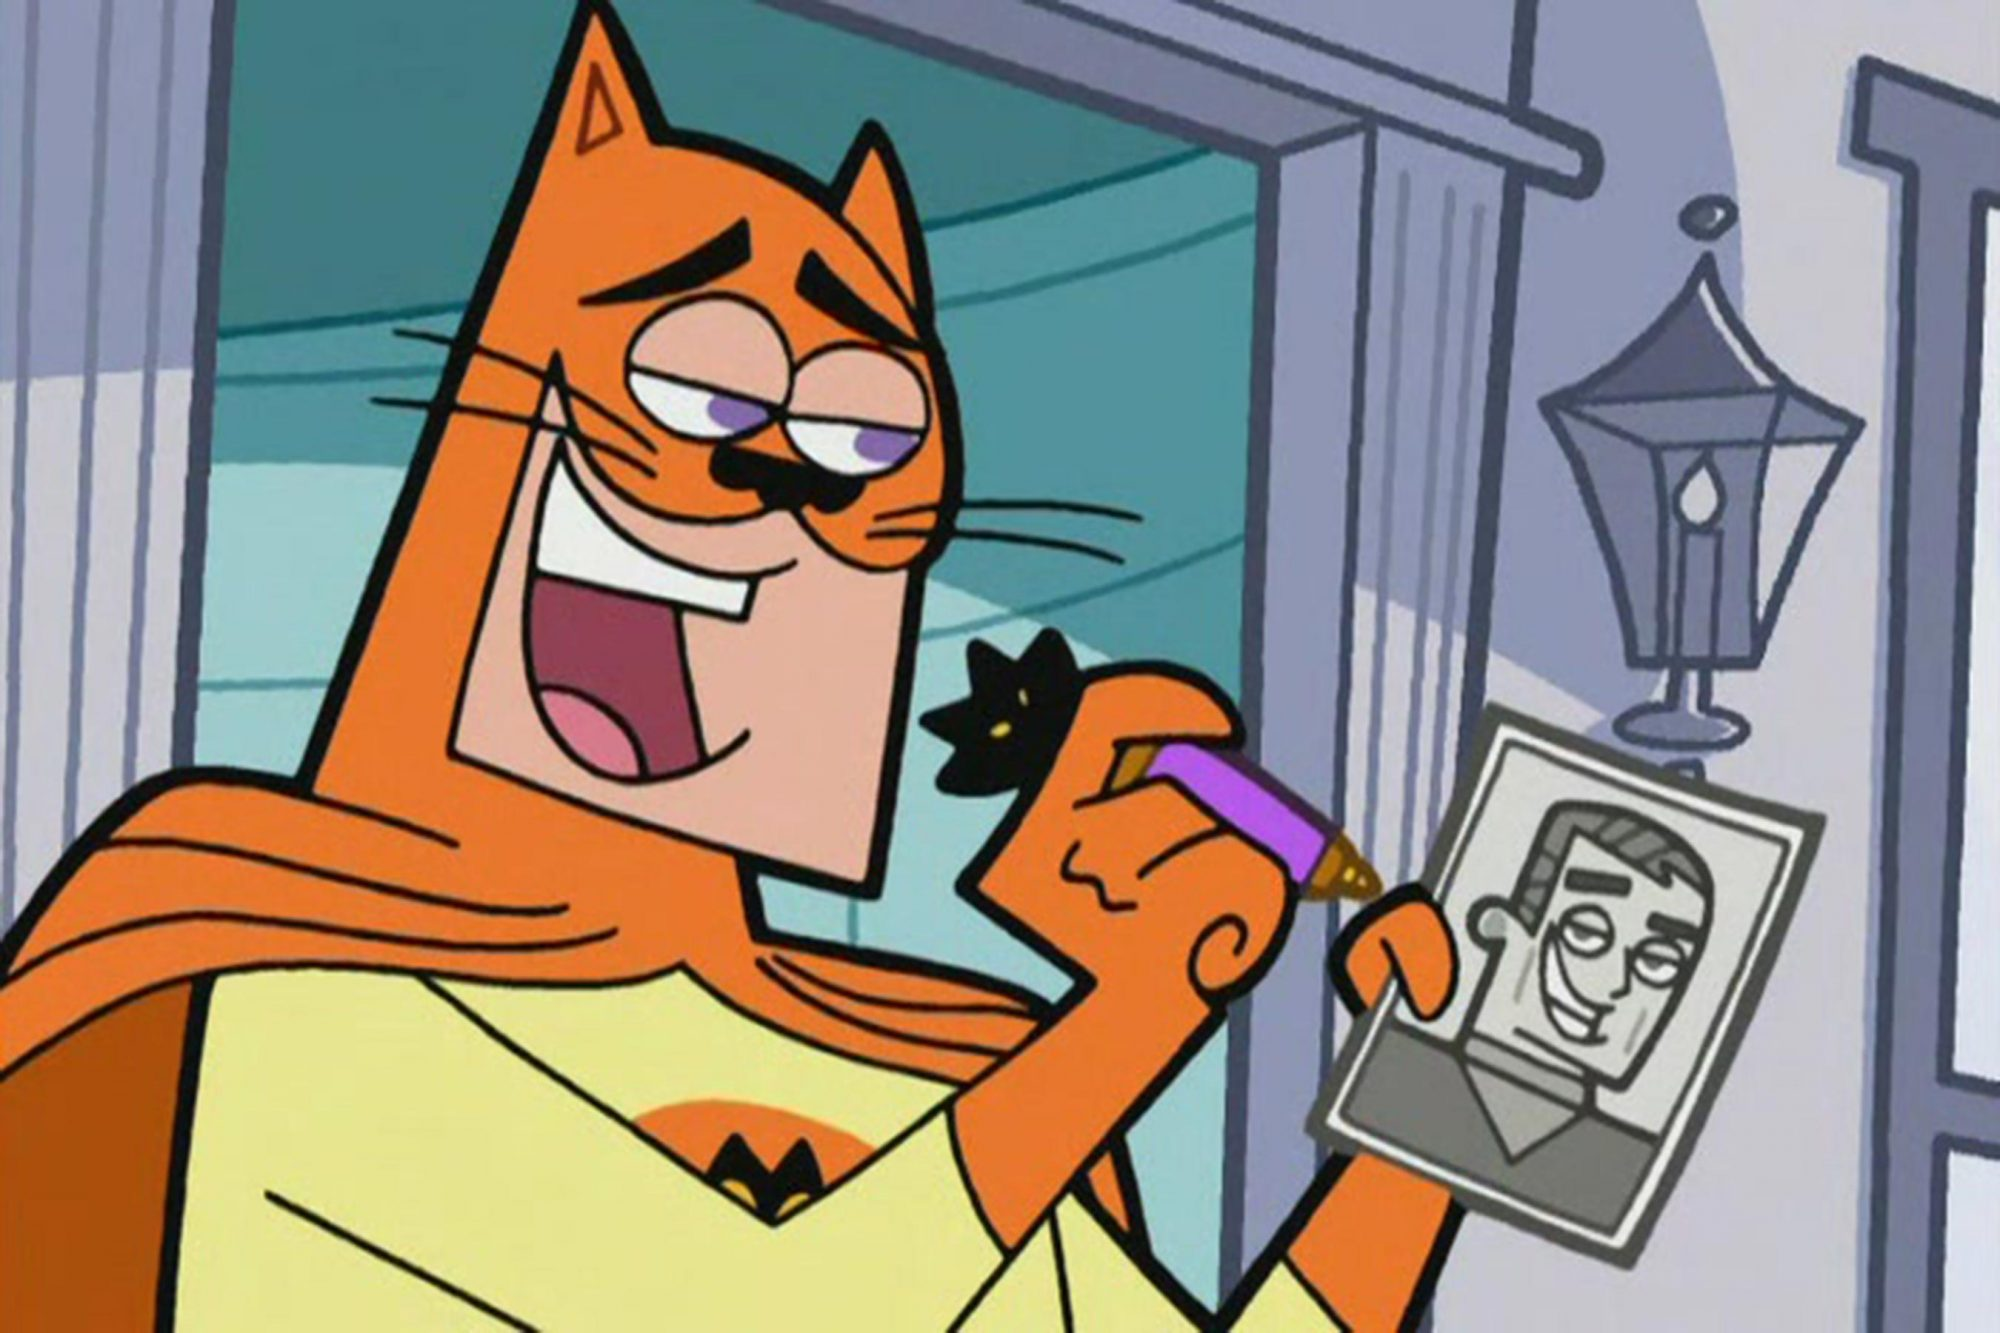 Adam West's Catman on Fairly OddParents